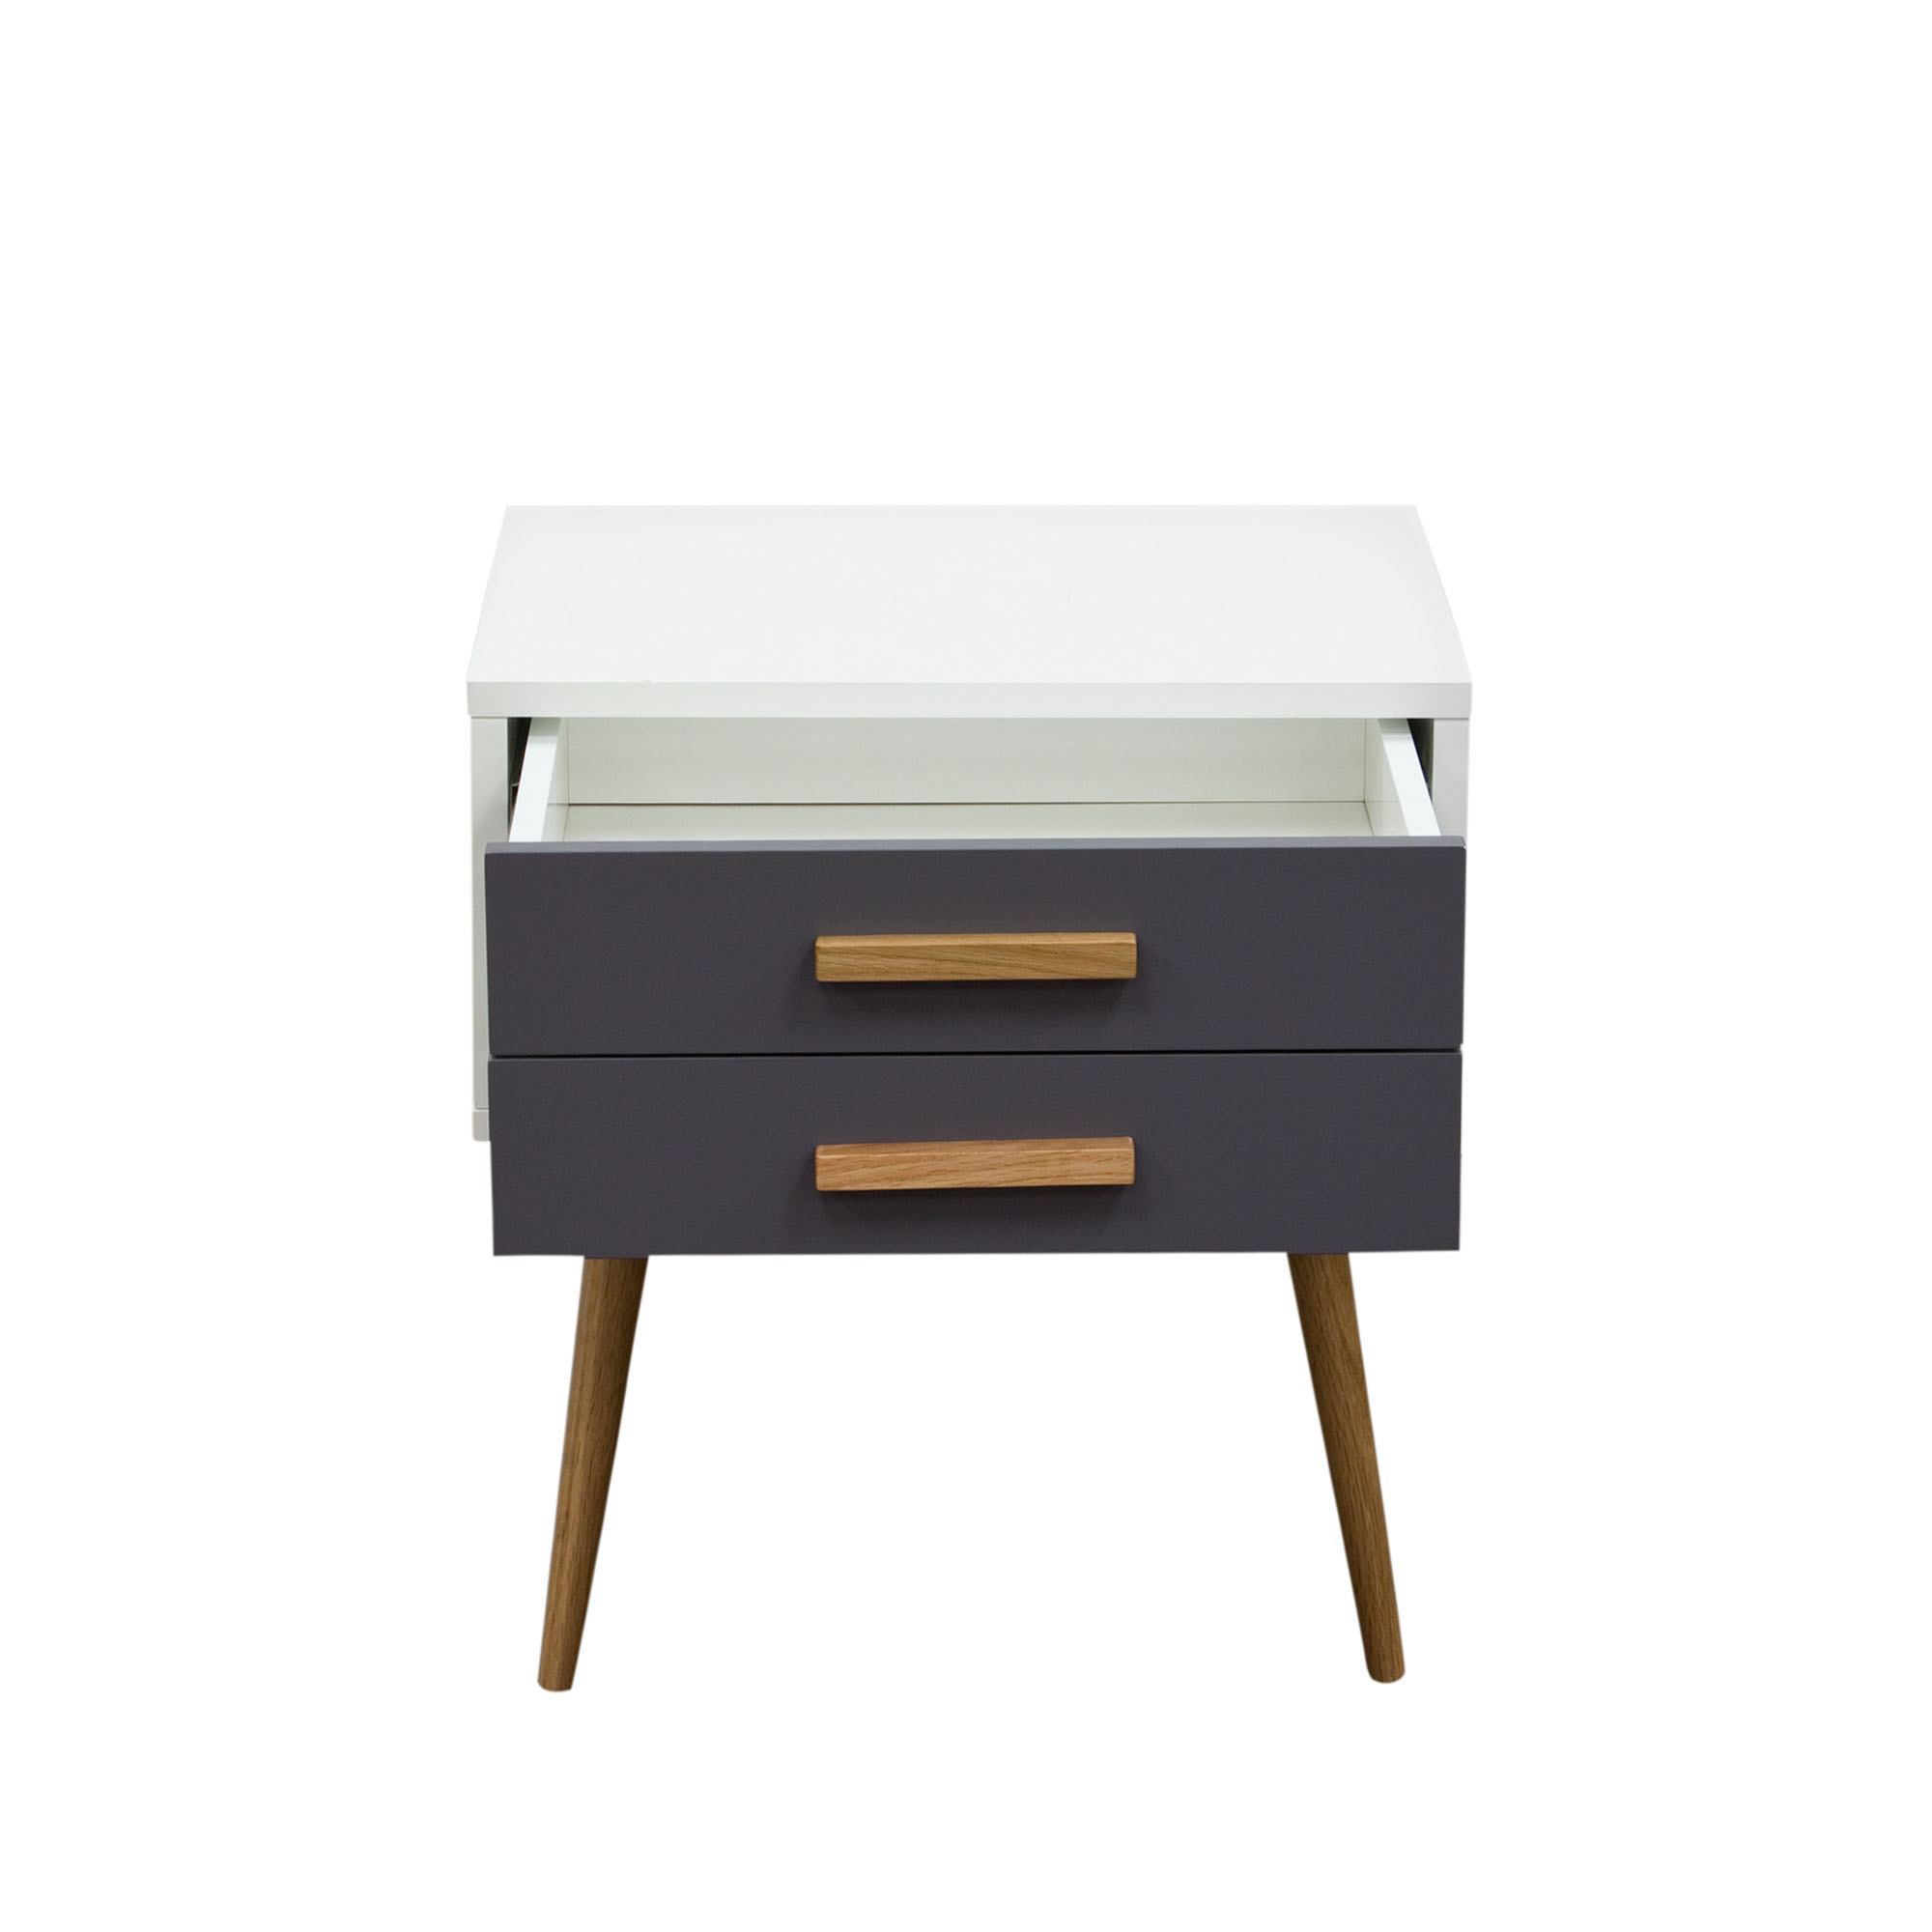 tangent drawer accent table white top grey drawers oak legs tangentetwhgr coffee tray solid tables slim telephone heavy duty umbrella base glass nesting bathroom wall clock yellow